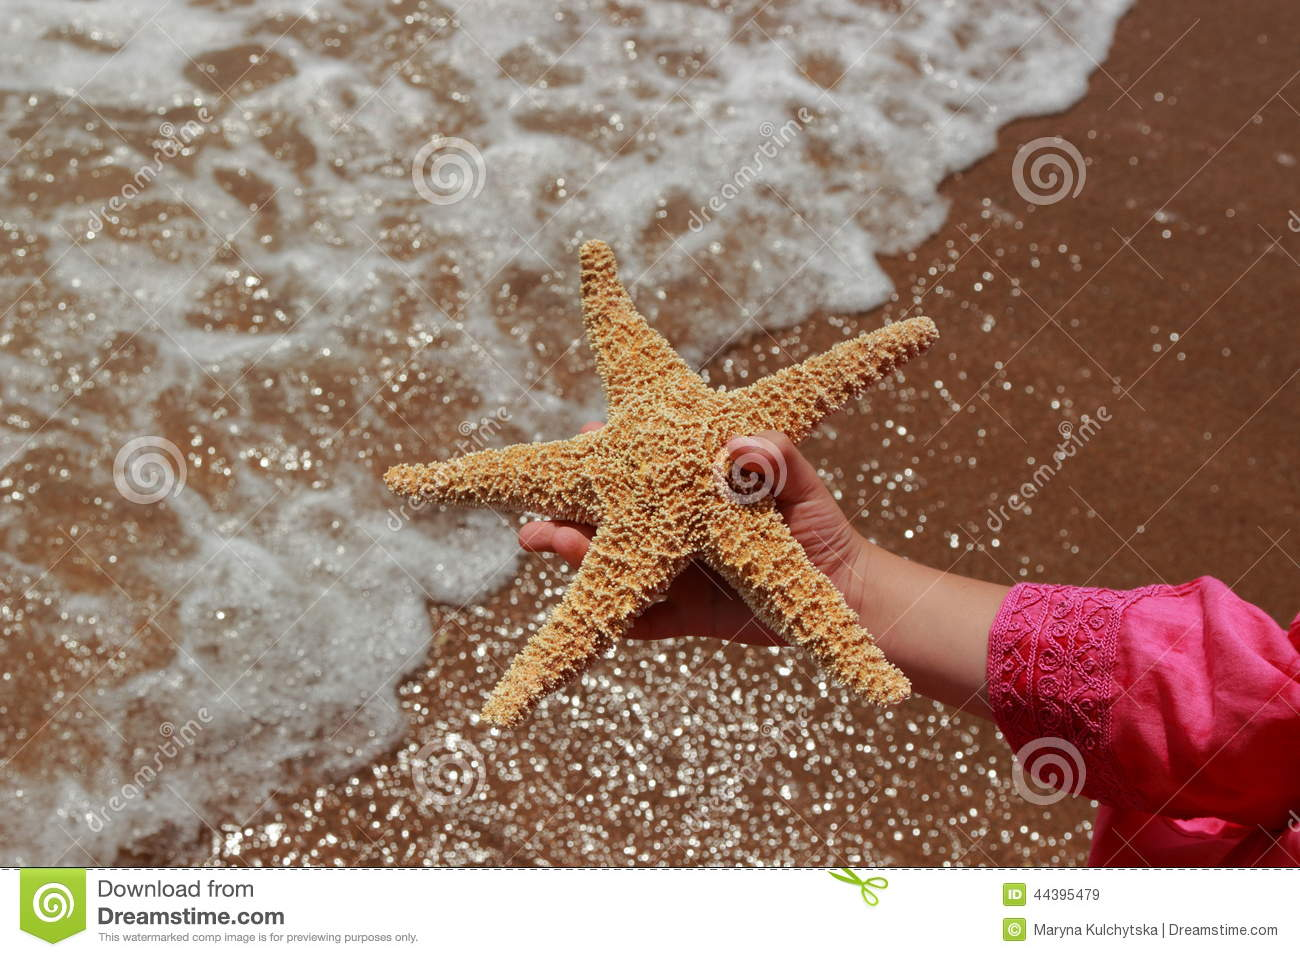 Seastar stock image  Image of girl, astrology, beach - 44395479